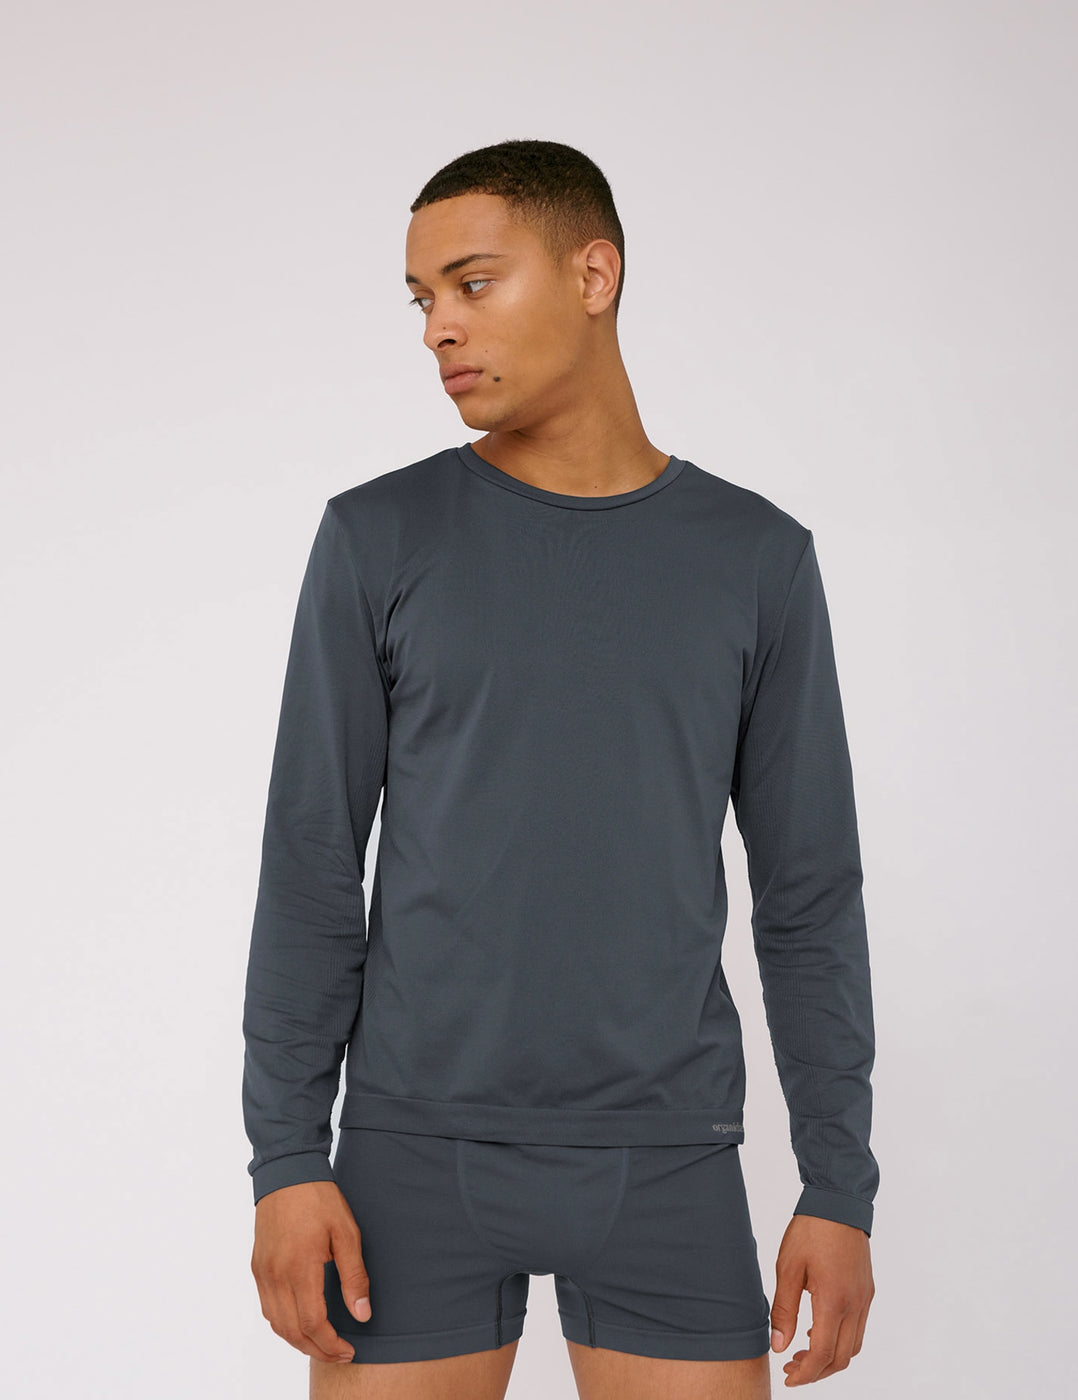 SilverTech™ Active Long Sleeve Tee 3-pack